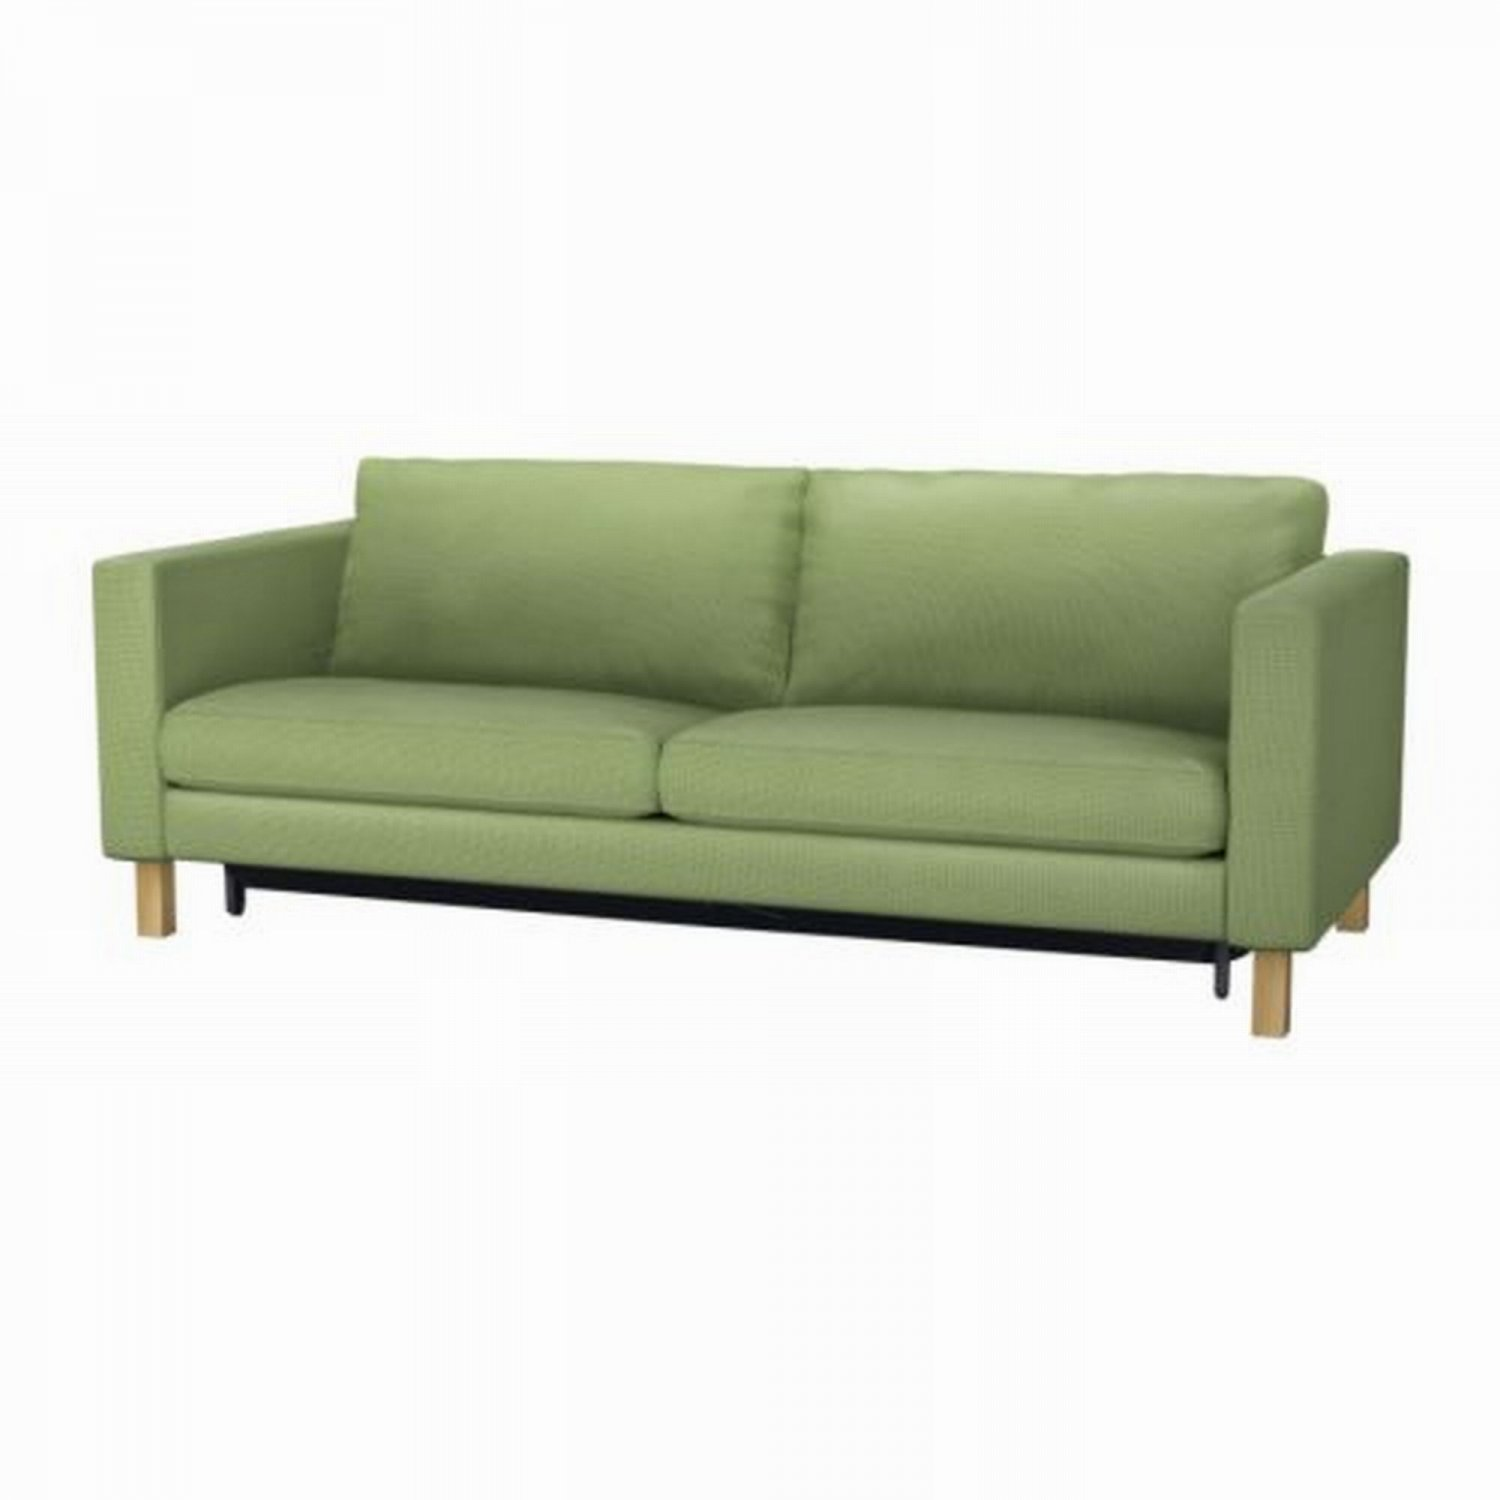 Ikea KARLSTAD Sofa Bed Sofabed SLIPCOVER Cover KORNDAL GREEN : 548c7dc80fe4c54622b from rock-paper-scissors.ecrater.co.uk size 1500 x 1500 jpeg 85kB